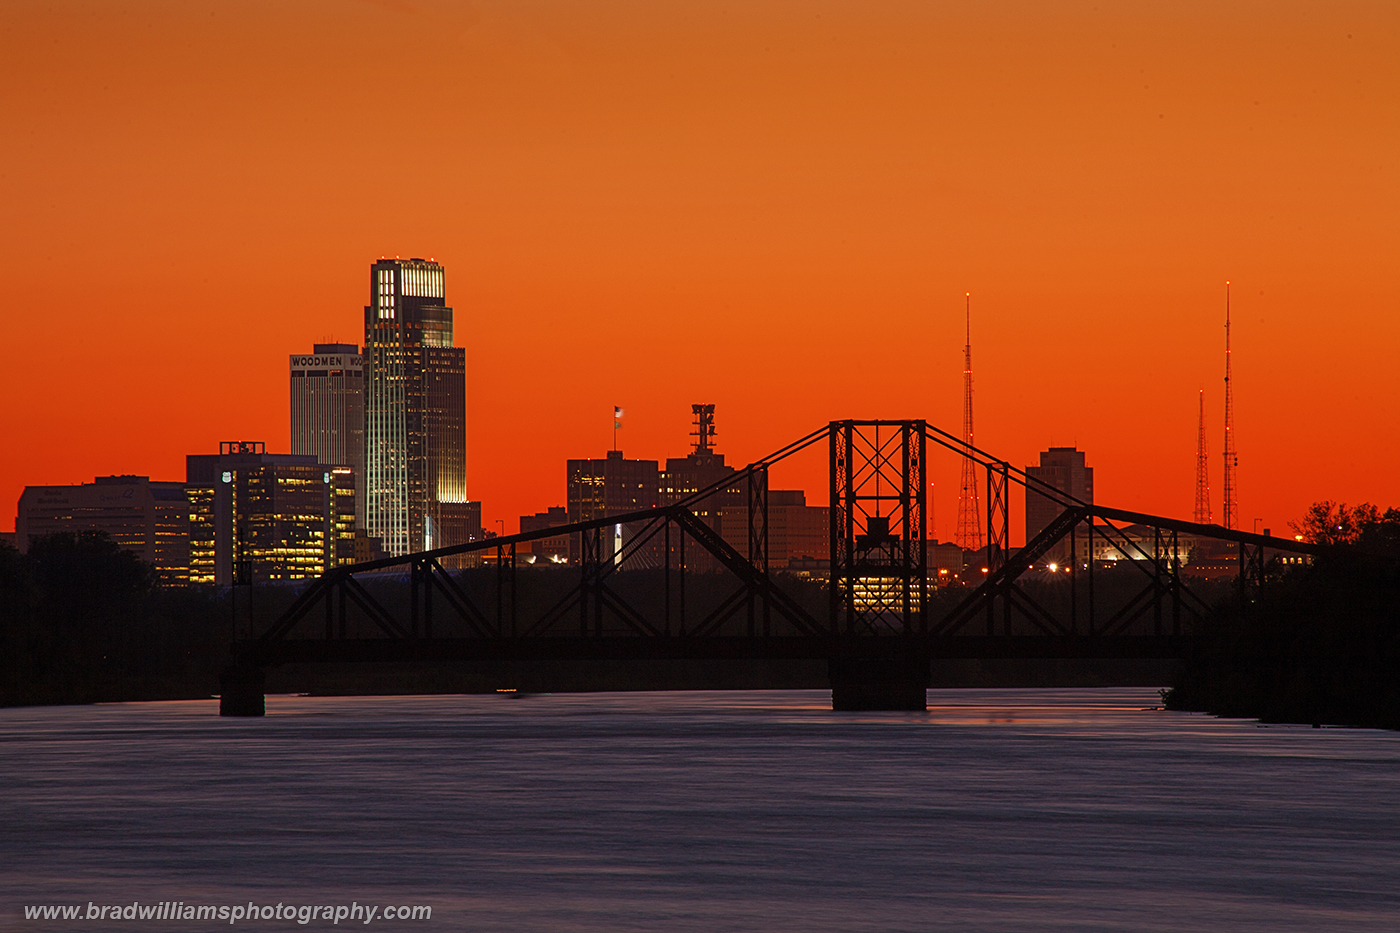 Omaha, Skyline, sunset, Illinois Central, Swing Bridge, Narrow Park, Council Bluffs, Iowa, photo